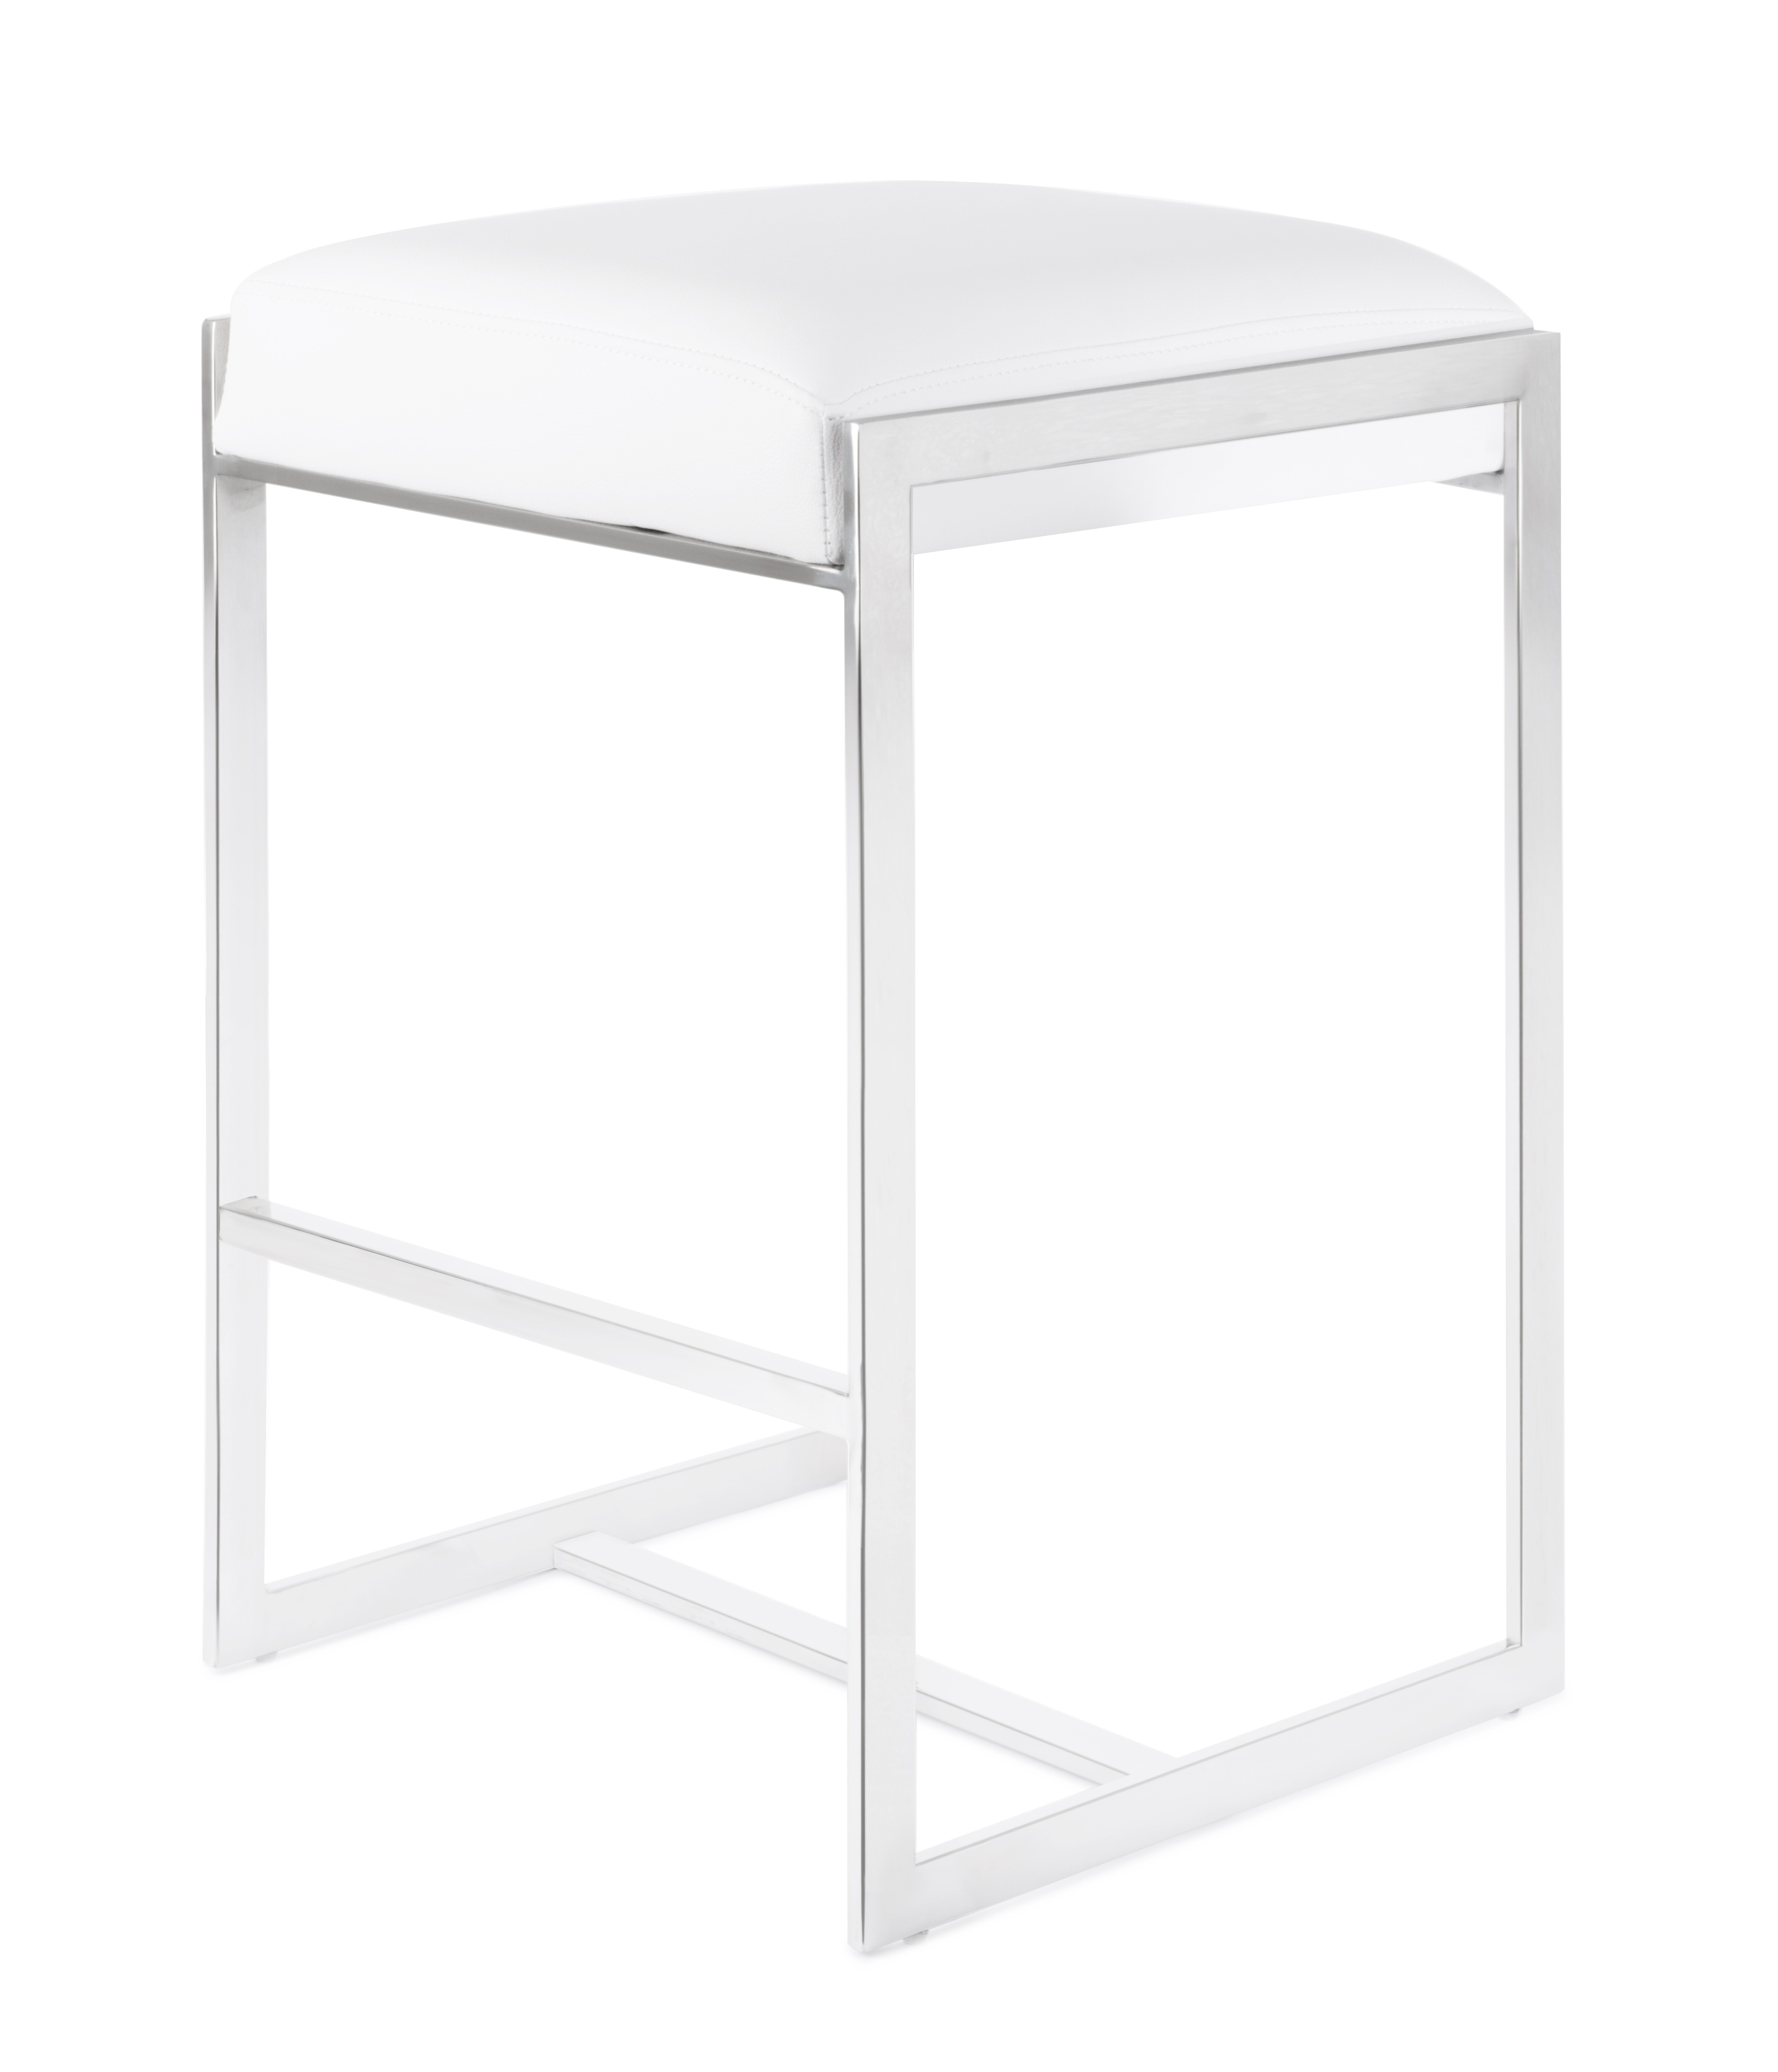 palmer-counter-chair-in-white-with-polished-frame.jpg